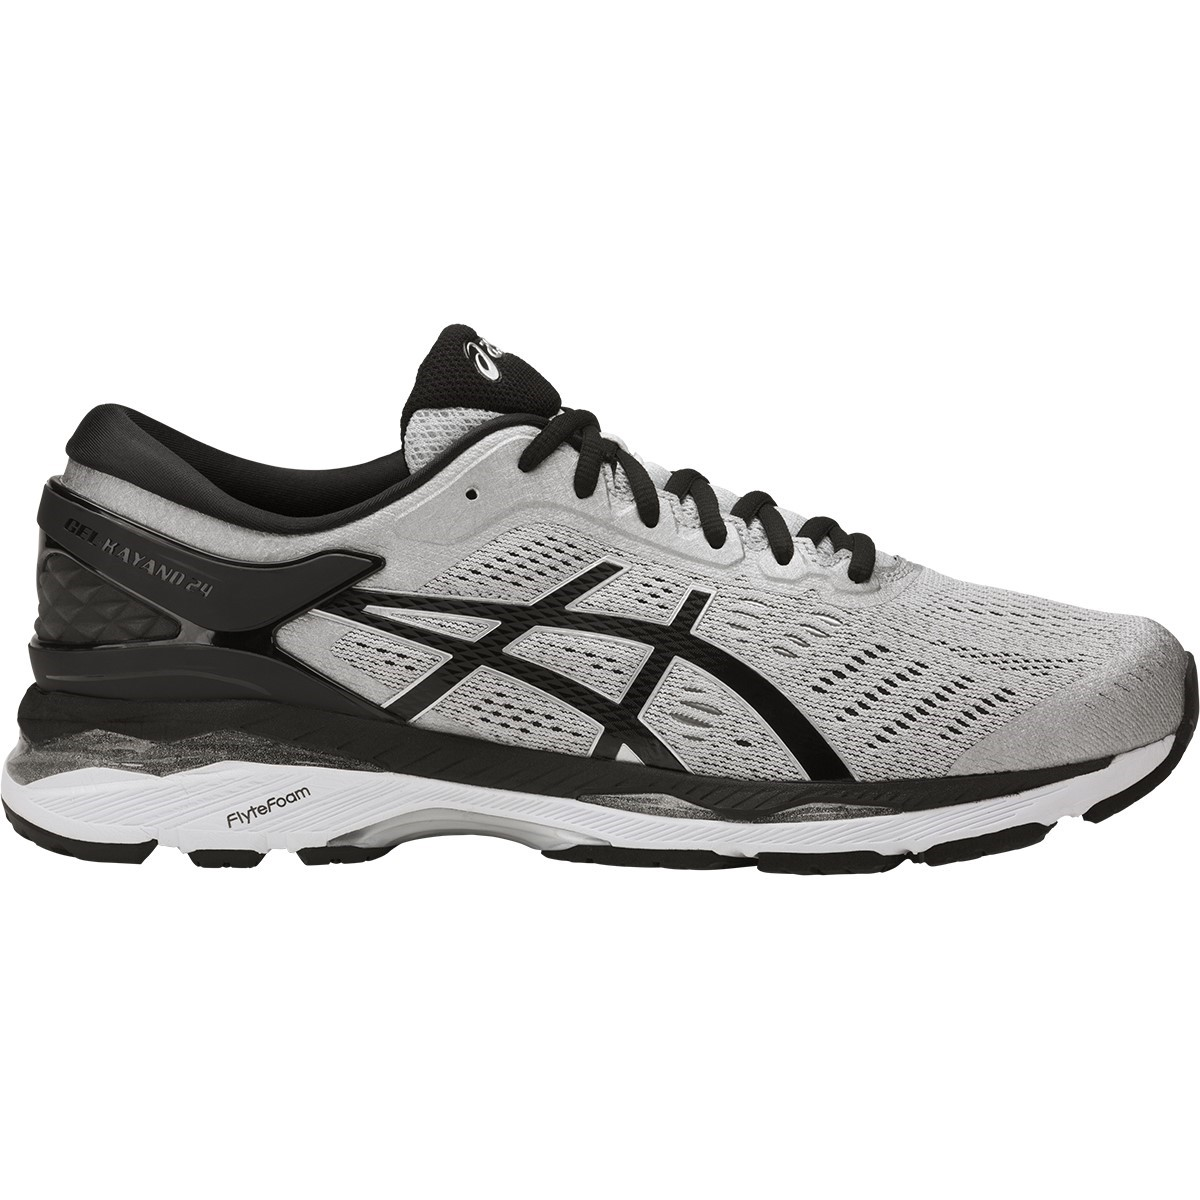 Asics Gel Kayano 24 (2E/4E) - Mens Running Shoes